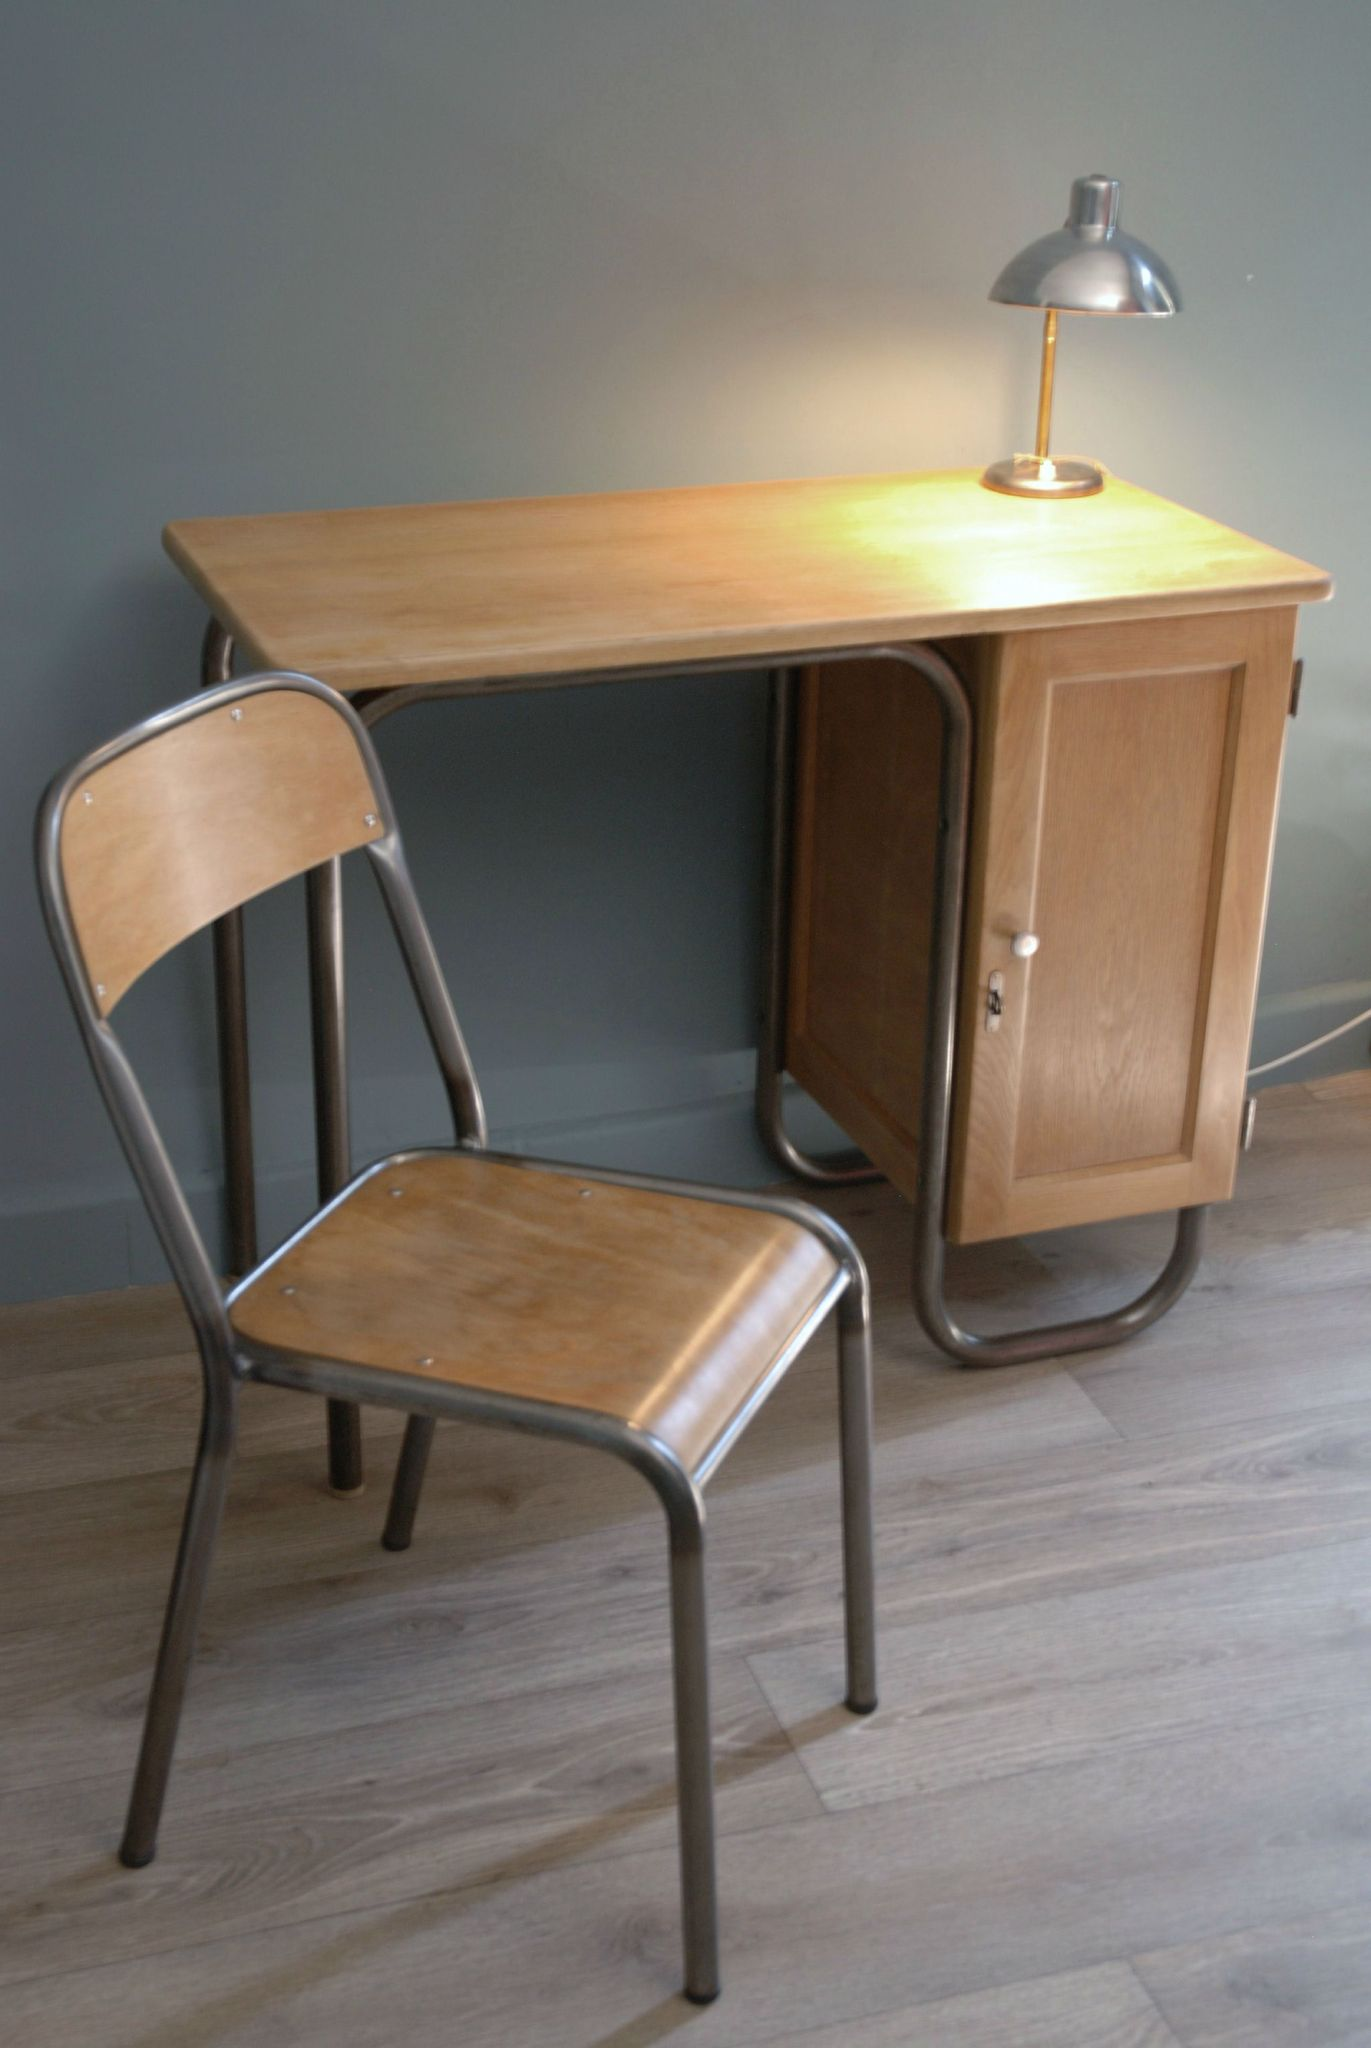 Table Rabattable Cuisine Paris Chaise De Bureau Vintage